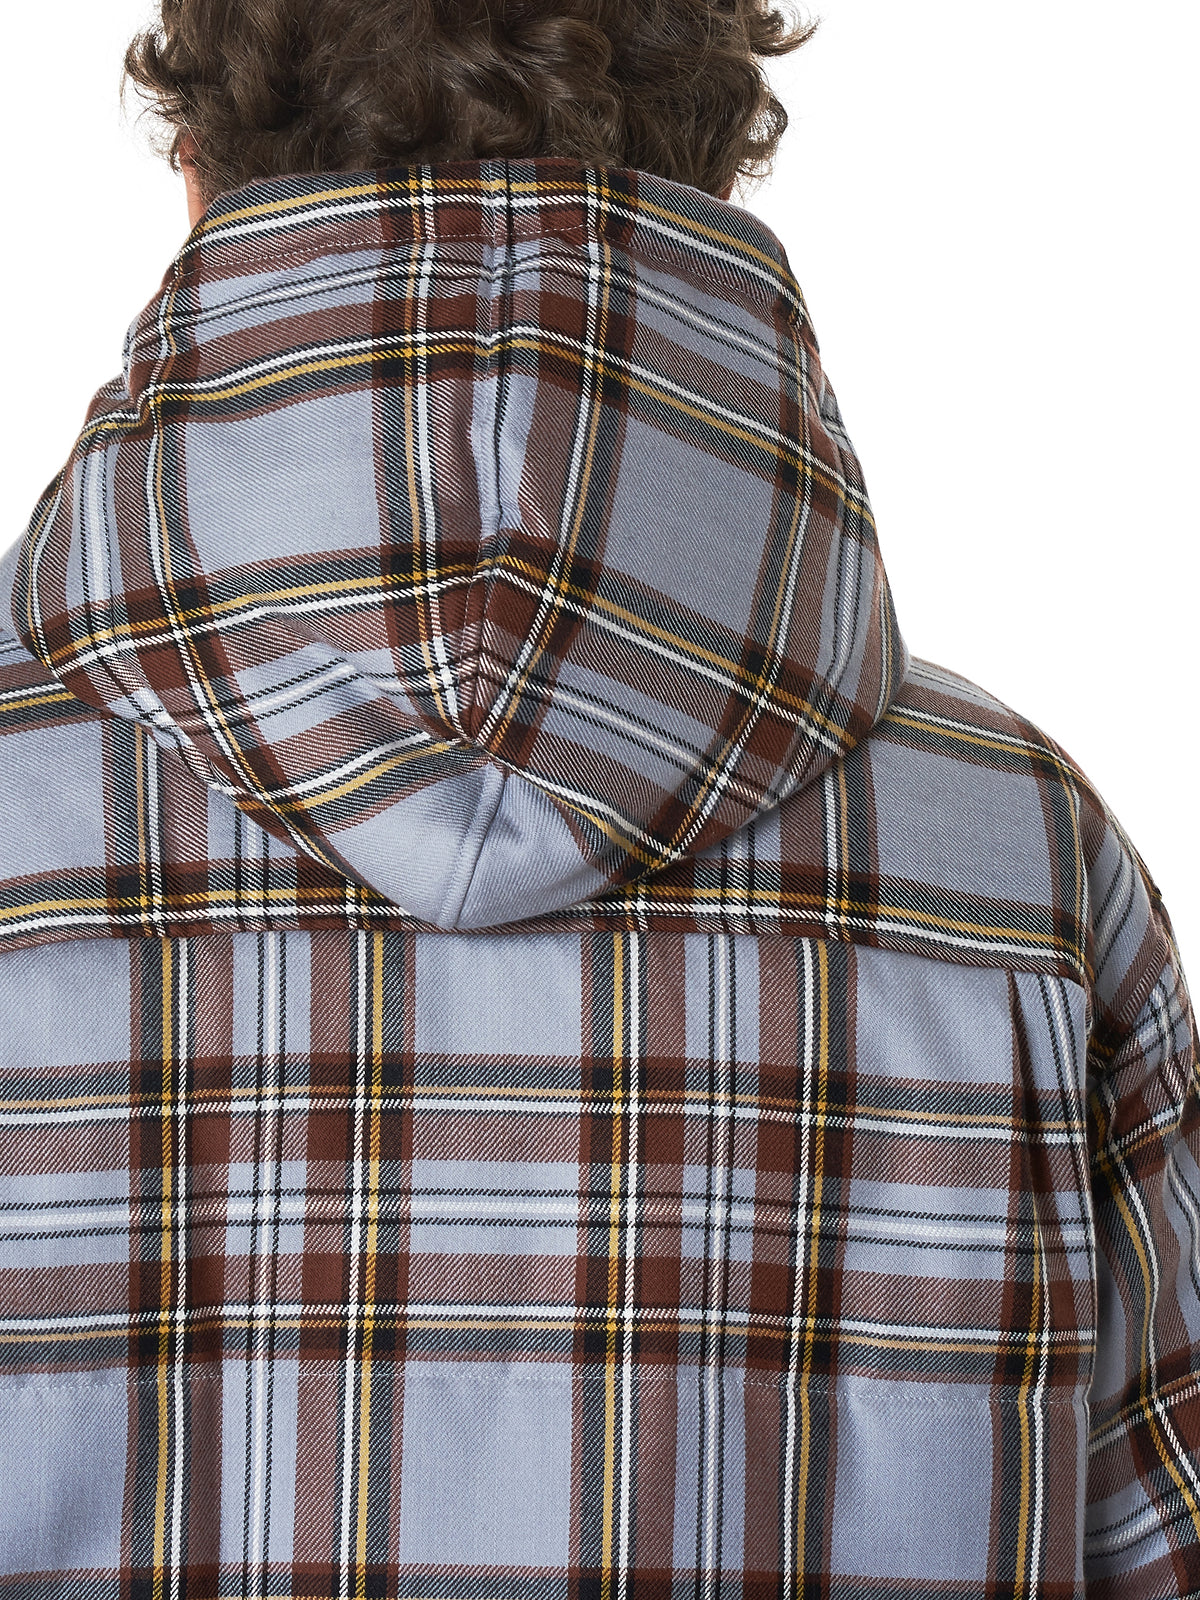 Undercover Check Jacket - Hlorenzo Detail 2